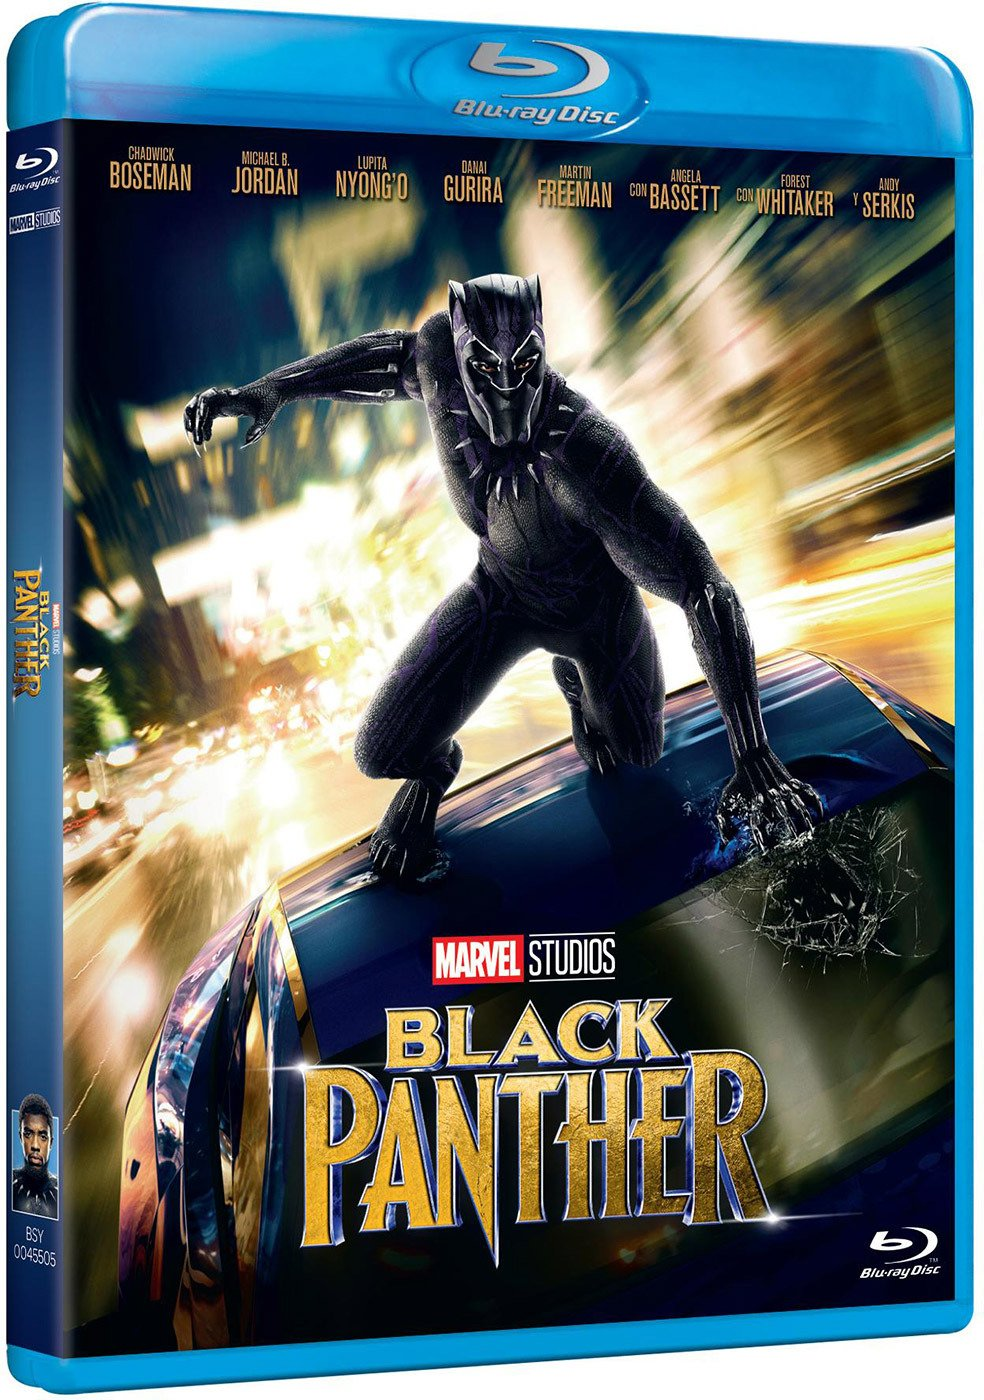 81tudhZhxJL - Black Panther [Blu-ray]